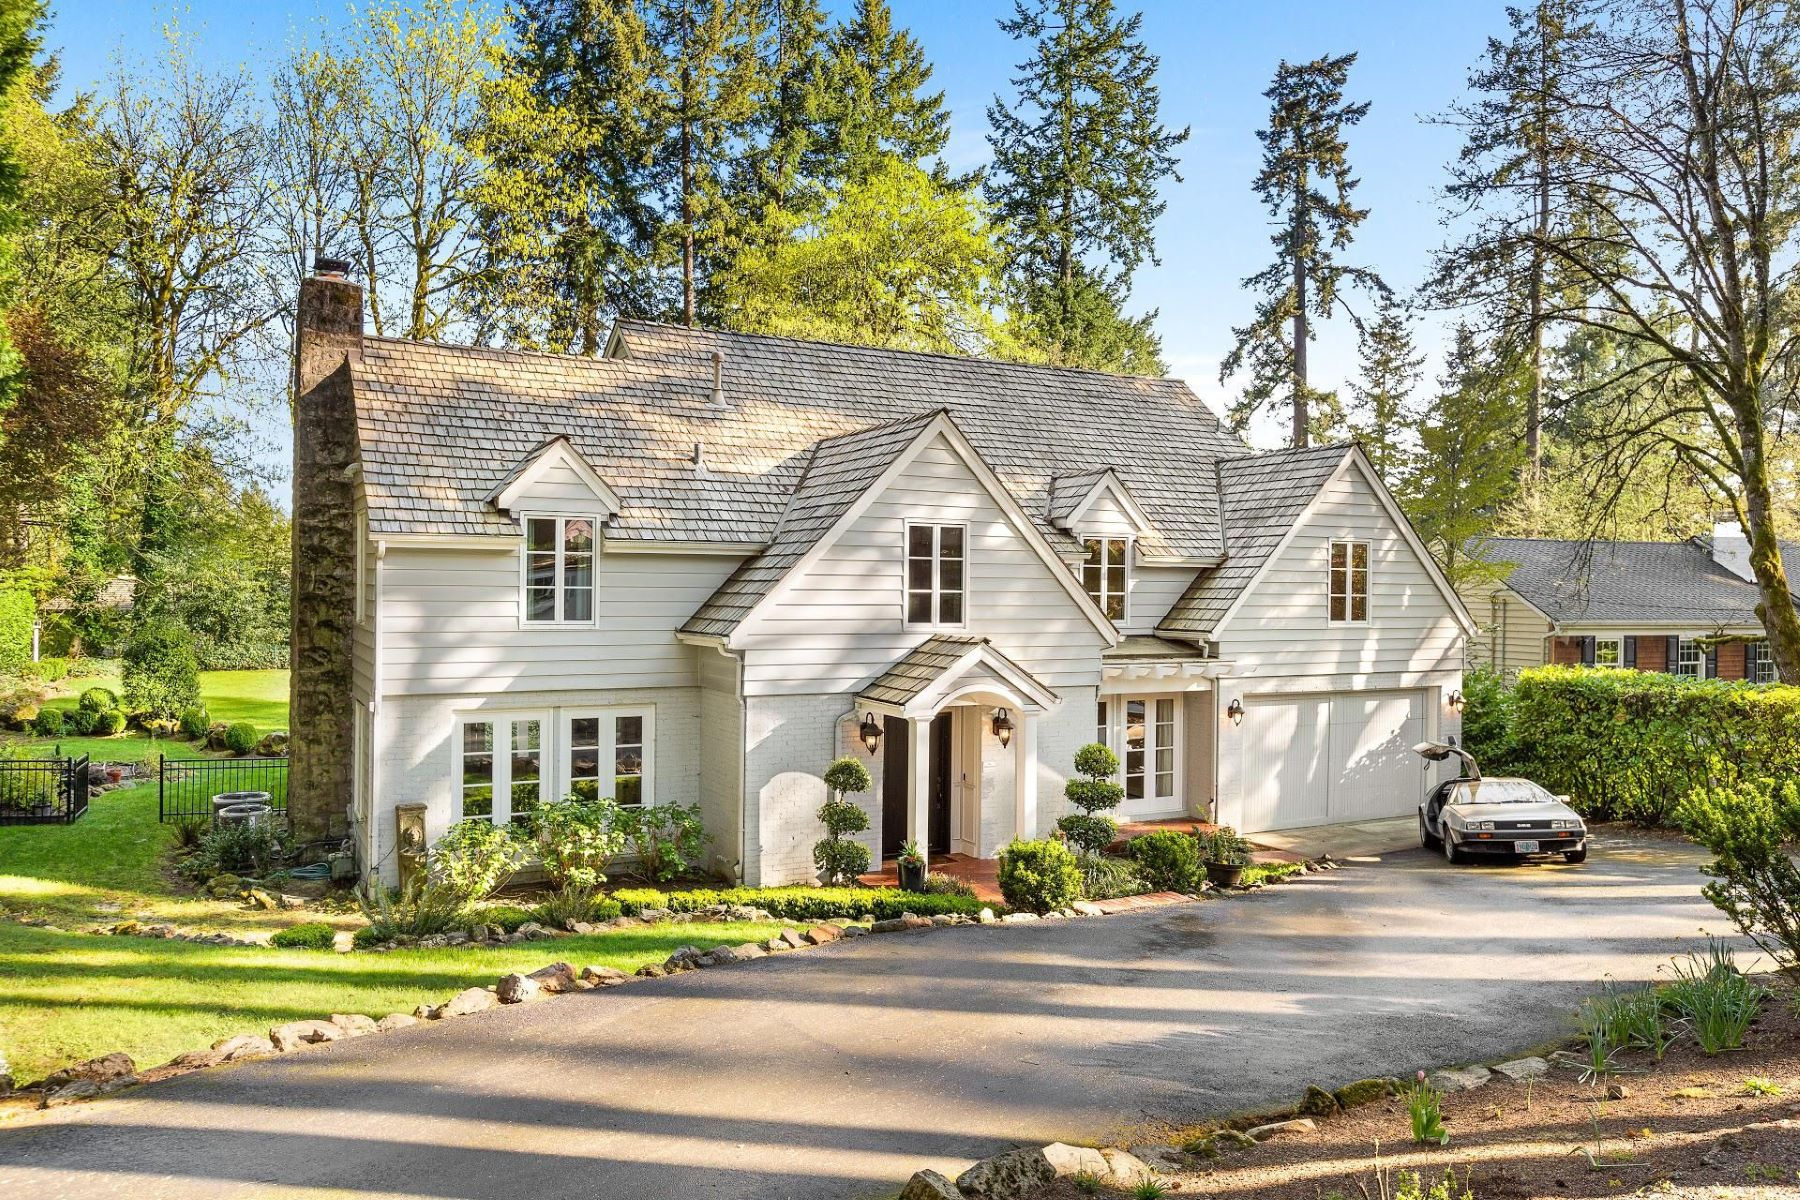 Other Residential Homes for Active at 163 IRON MOUNTAIN BLVD Lake Oswego, OR 97034 163 IRON MOUNTAIN BLVD Lake Oswego, Oregon 97034 United States